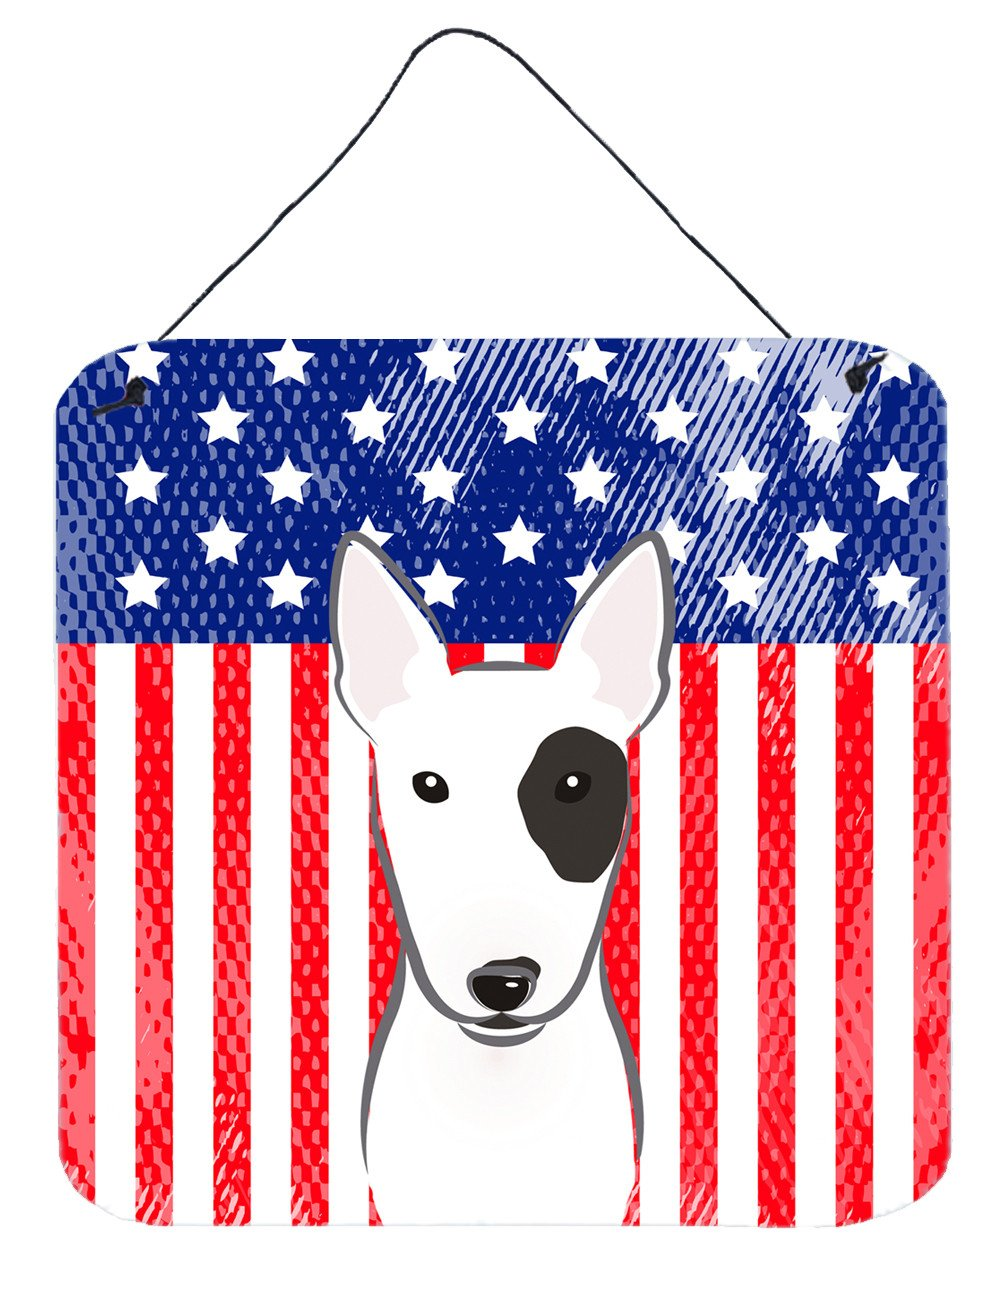 American Flag and Bull Terrier Wall or Door Hanging Prints BB2139DS66 - the-store.com